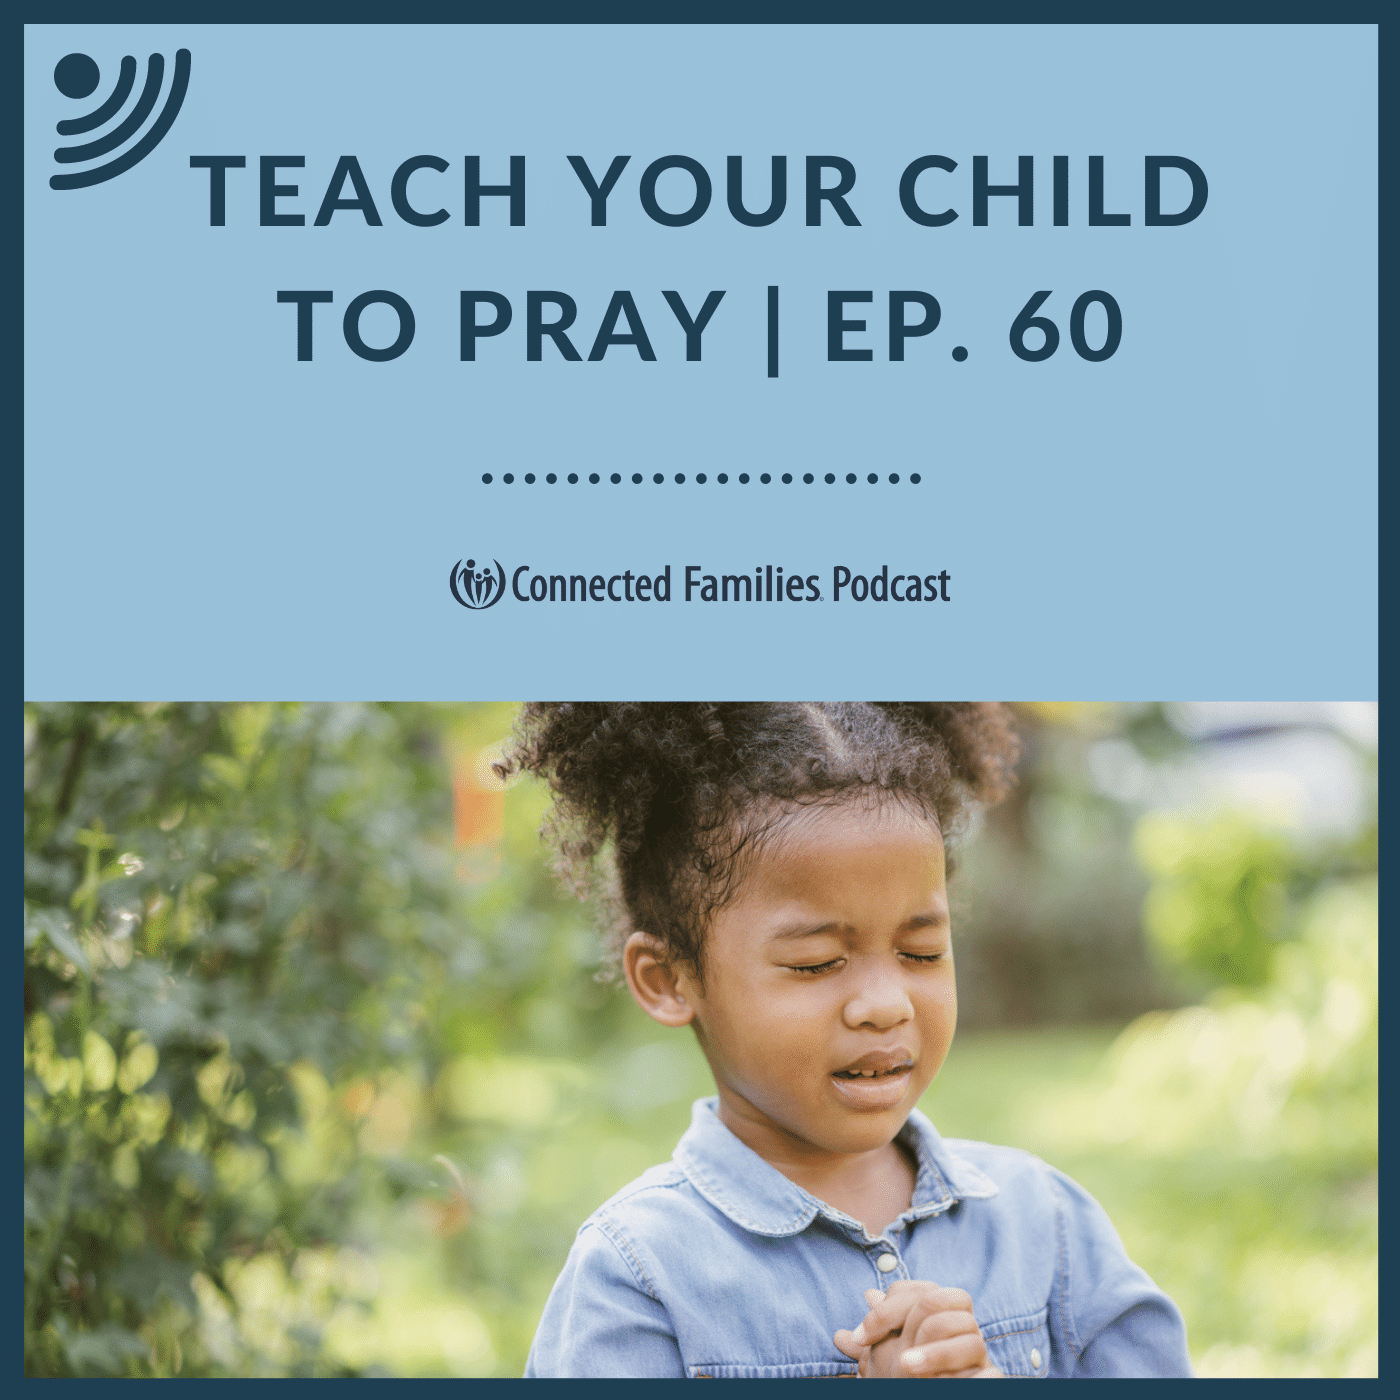 Teach Your Child to Pray | Ep. 60